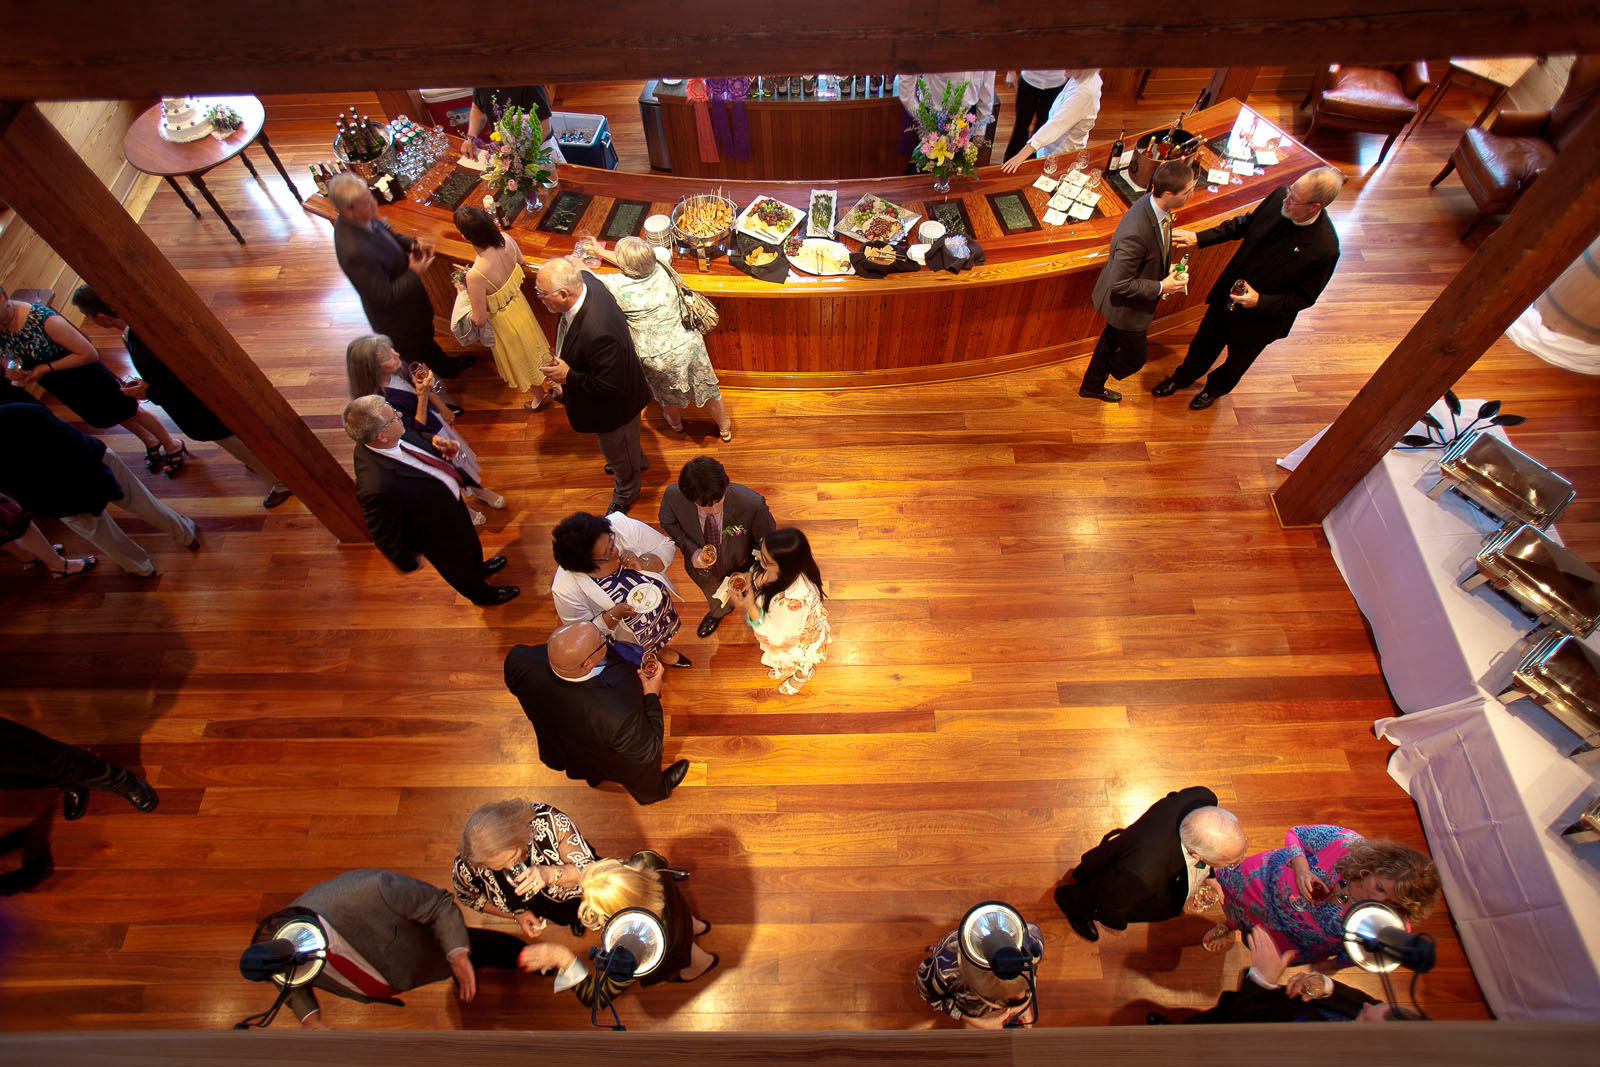 people-at-reception-from-above-4